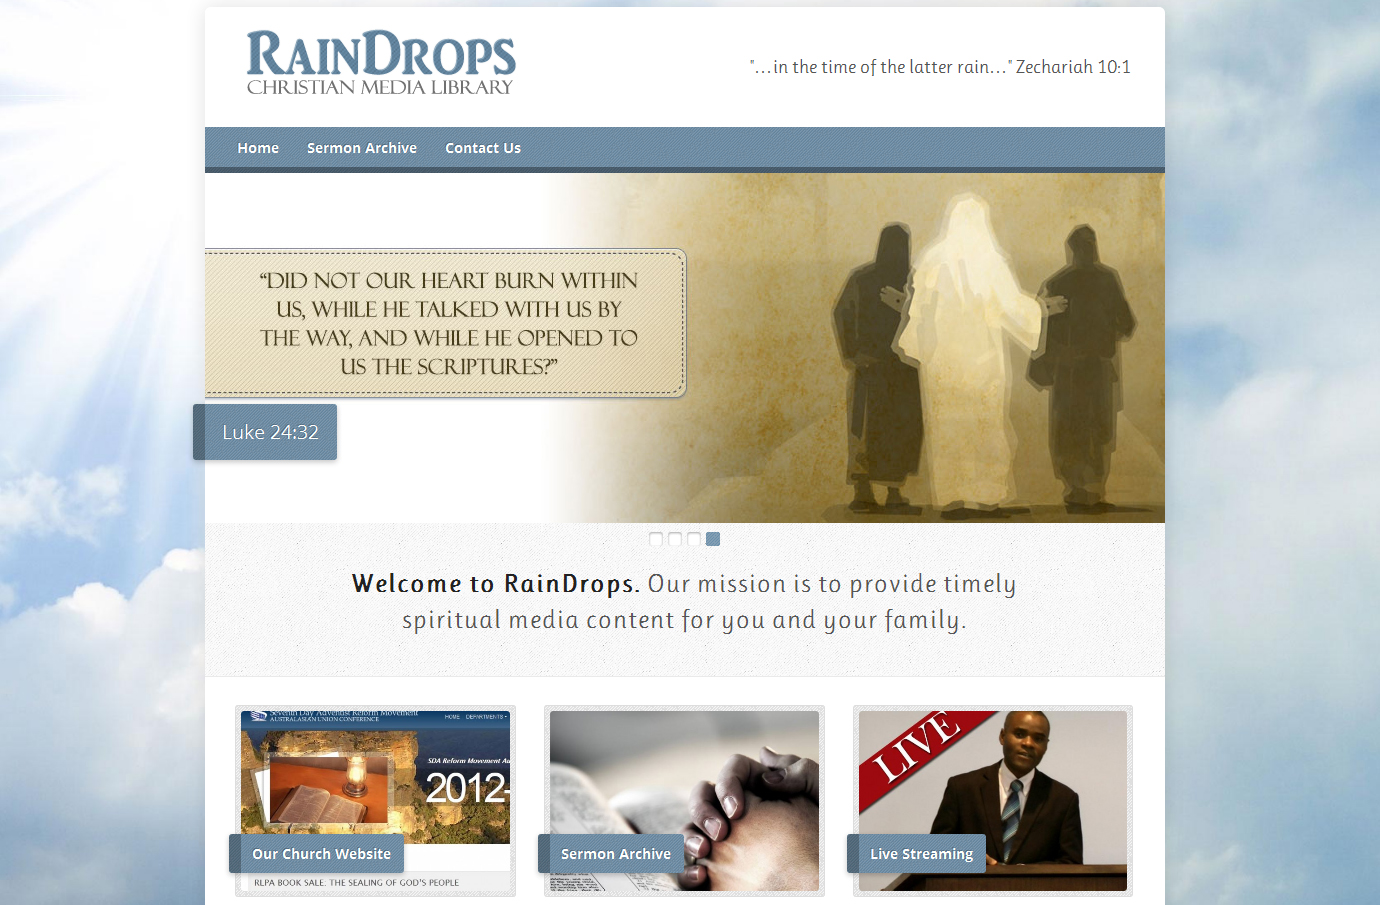 RainDrops_Website.jpg